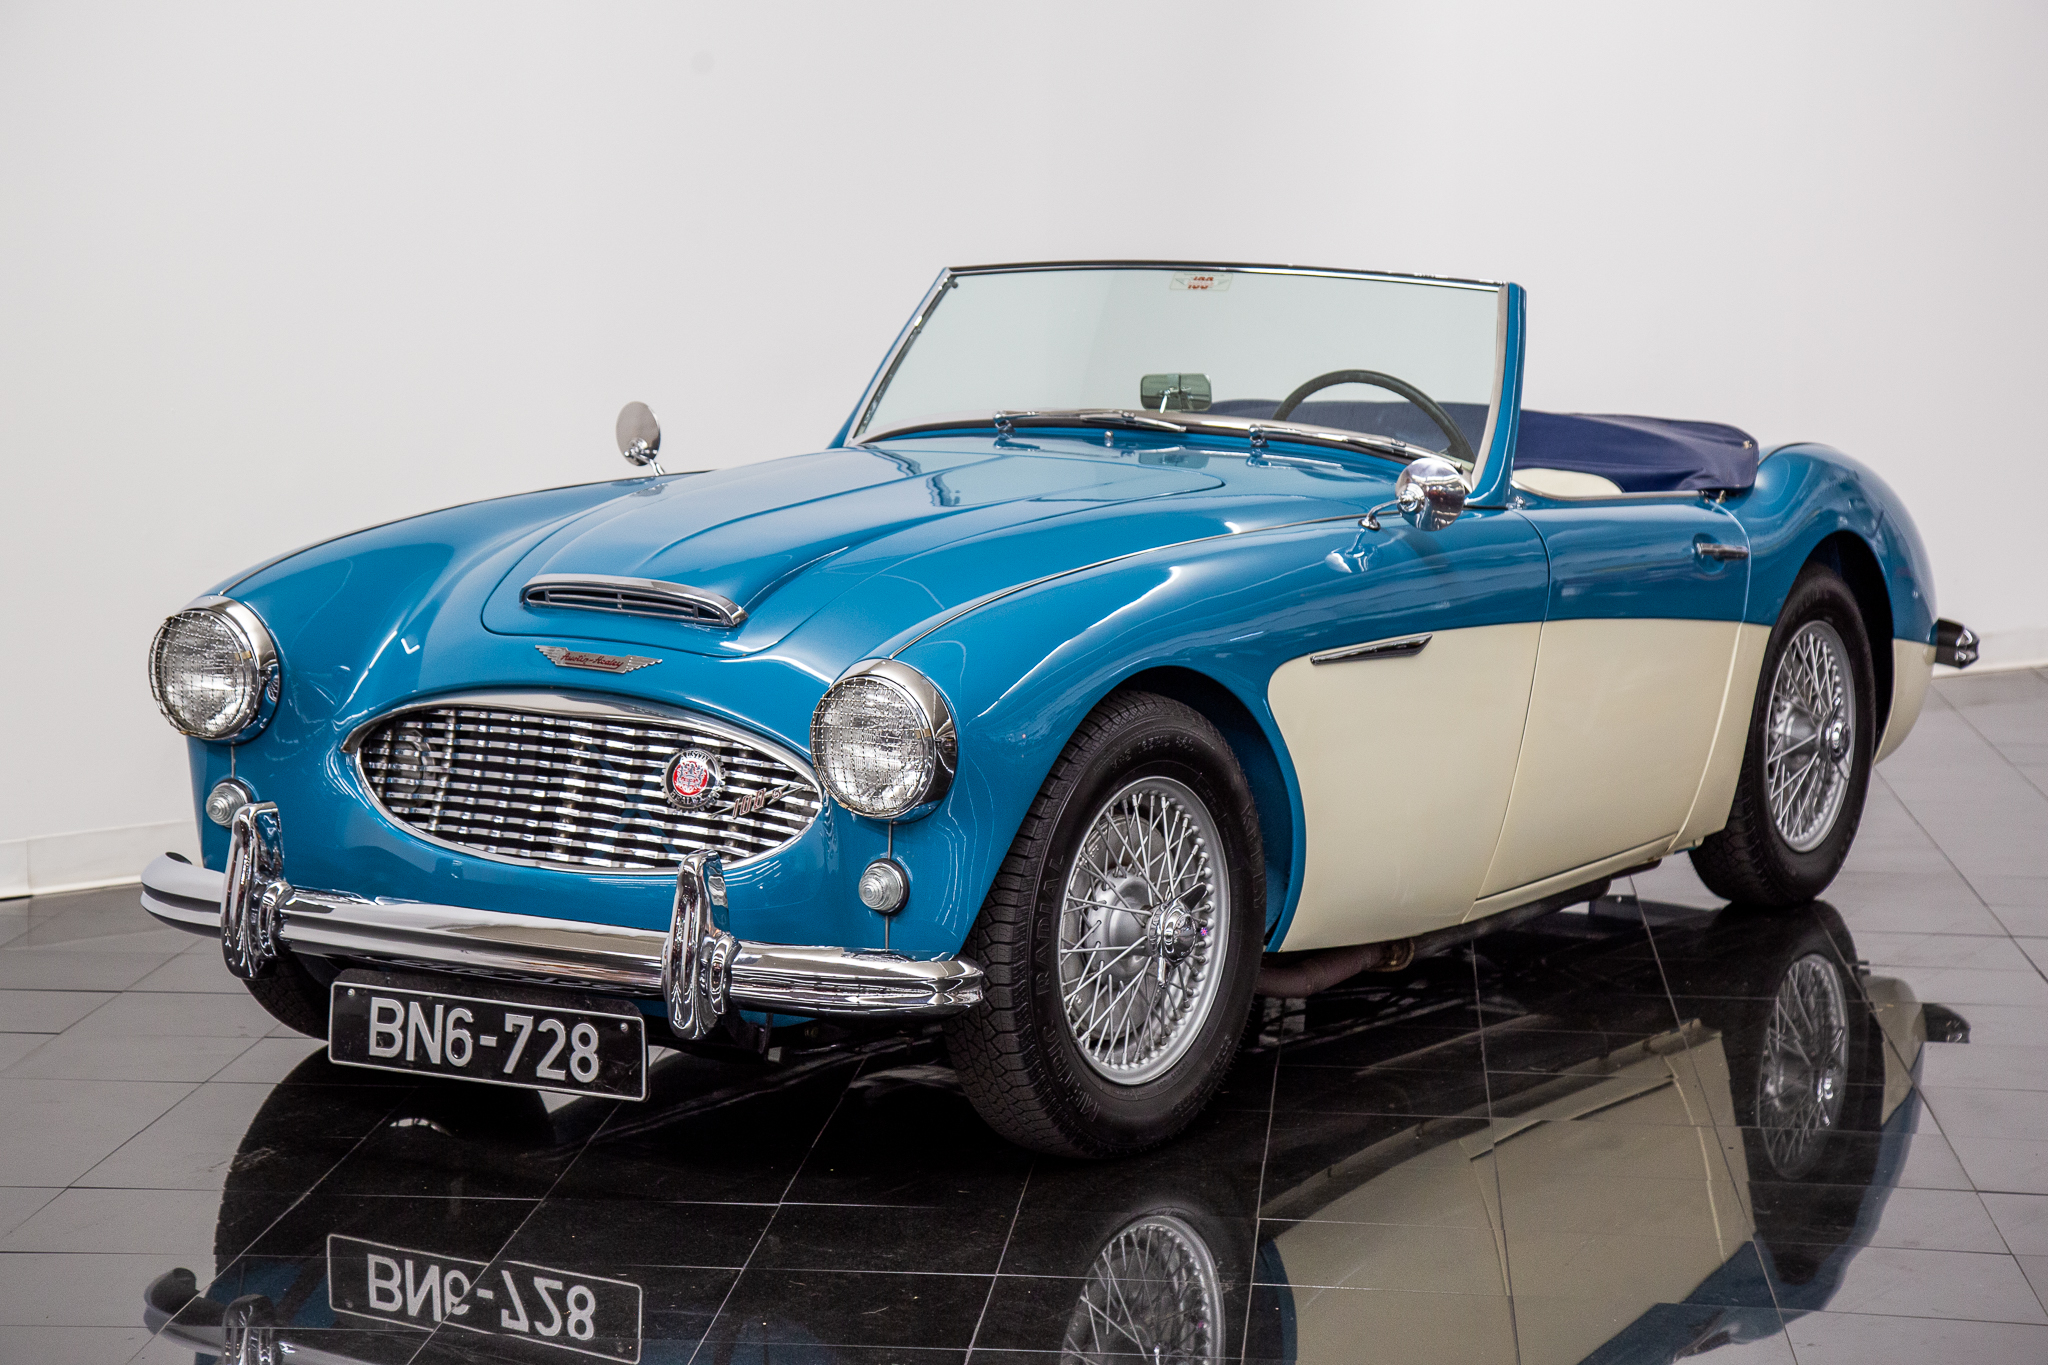 For Sale 11958 Austin Healey 100-6 BN6 2 Seater Roadster